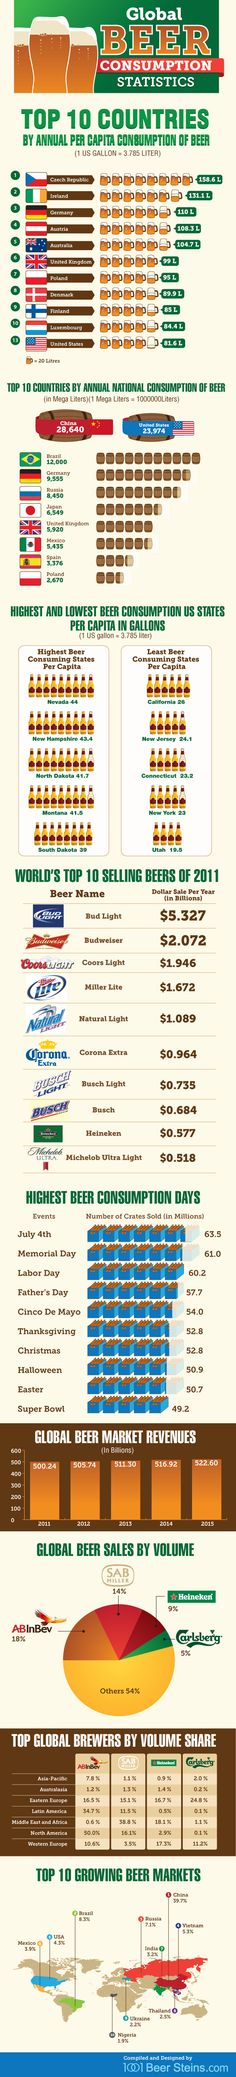 The top 10 #growing #beer #markets in the world